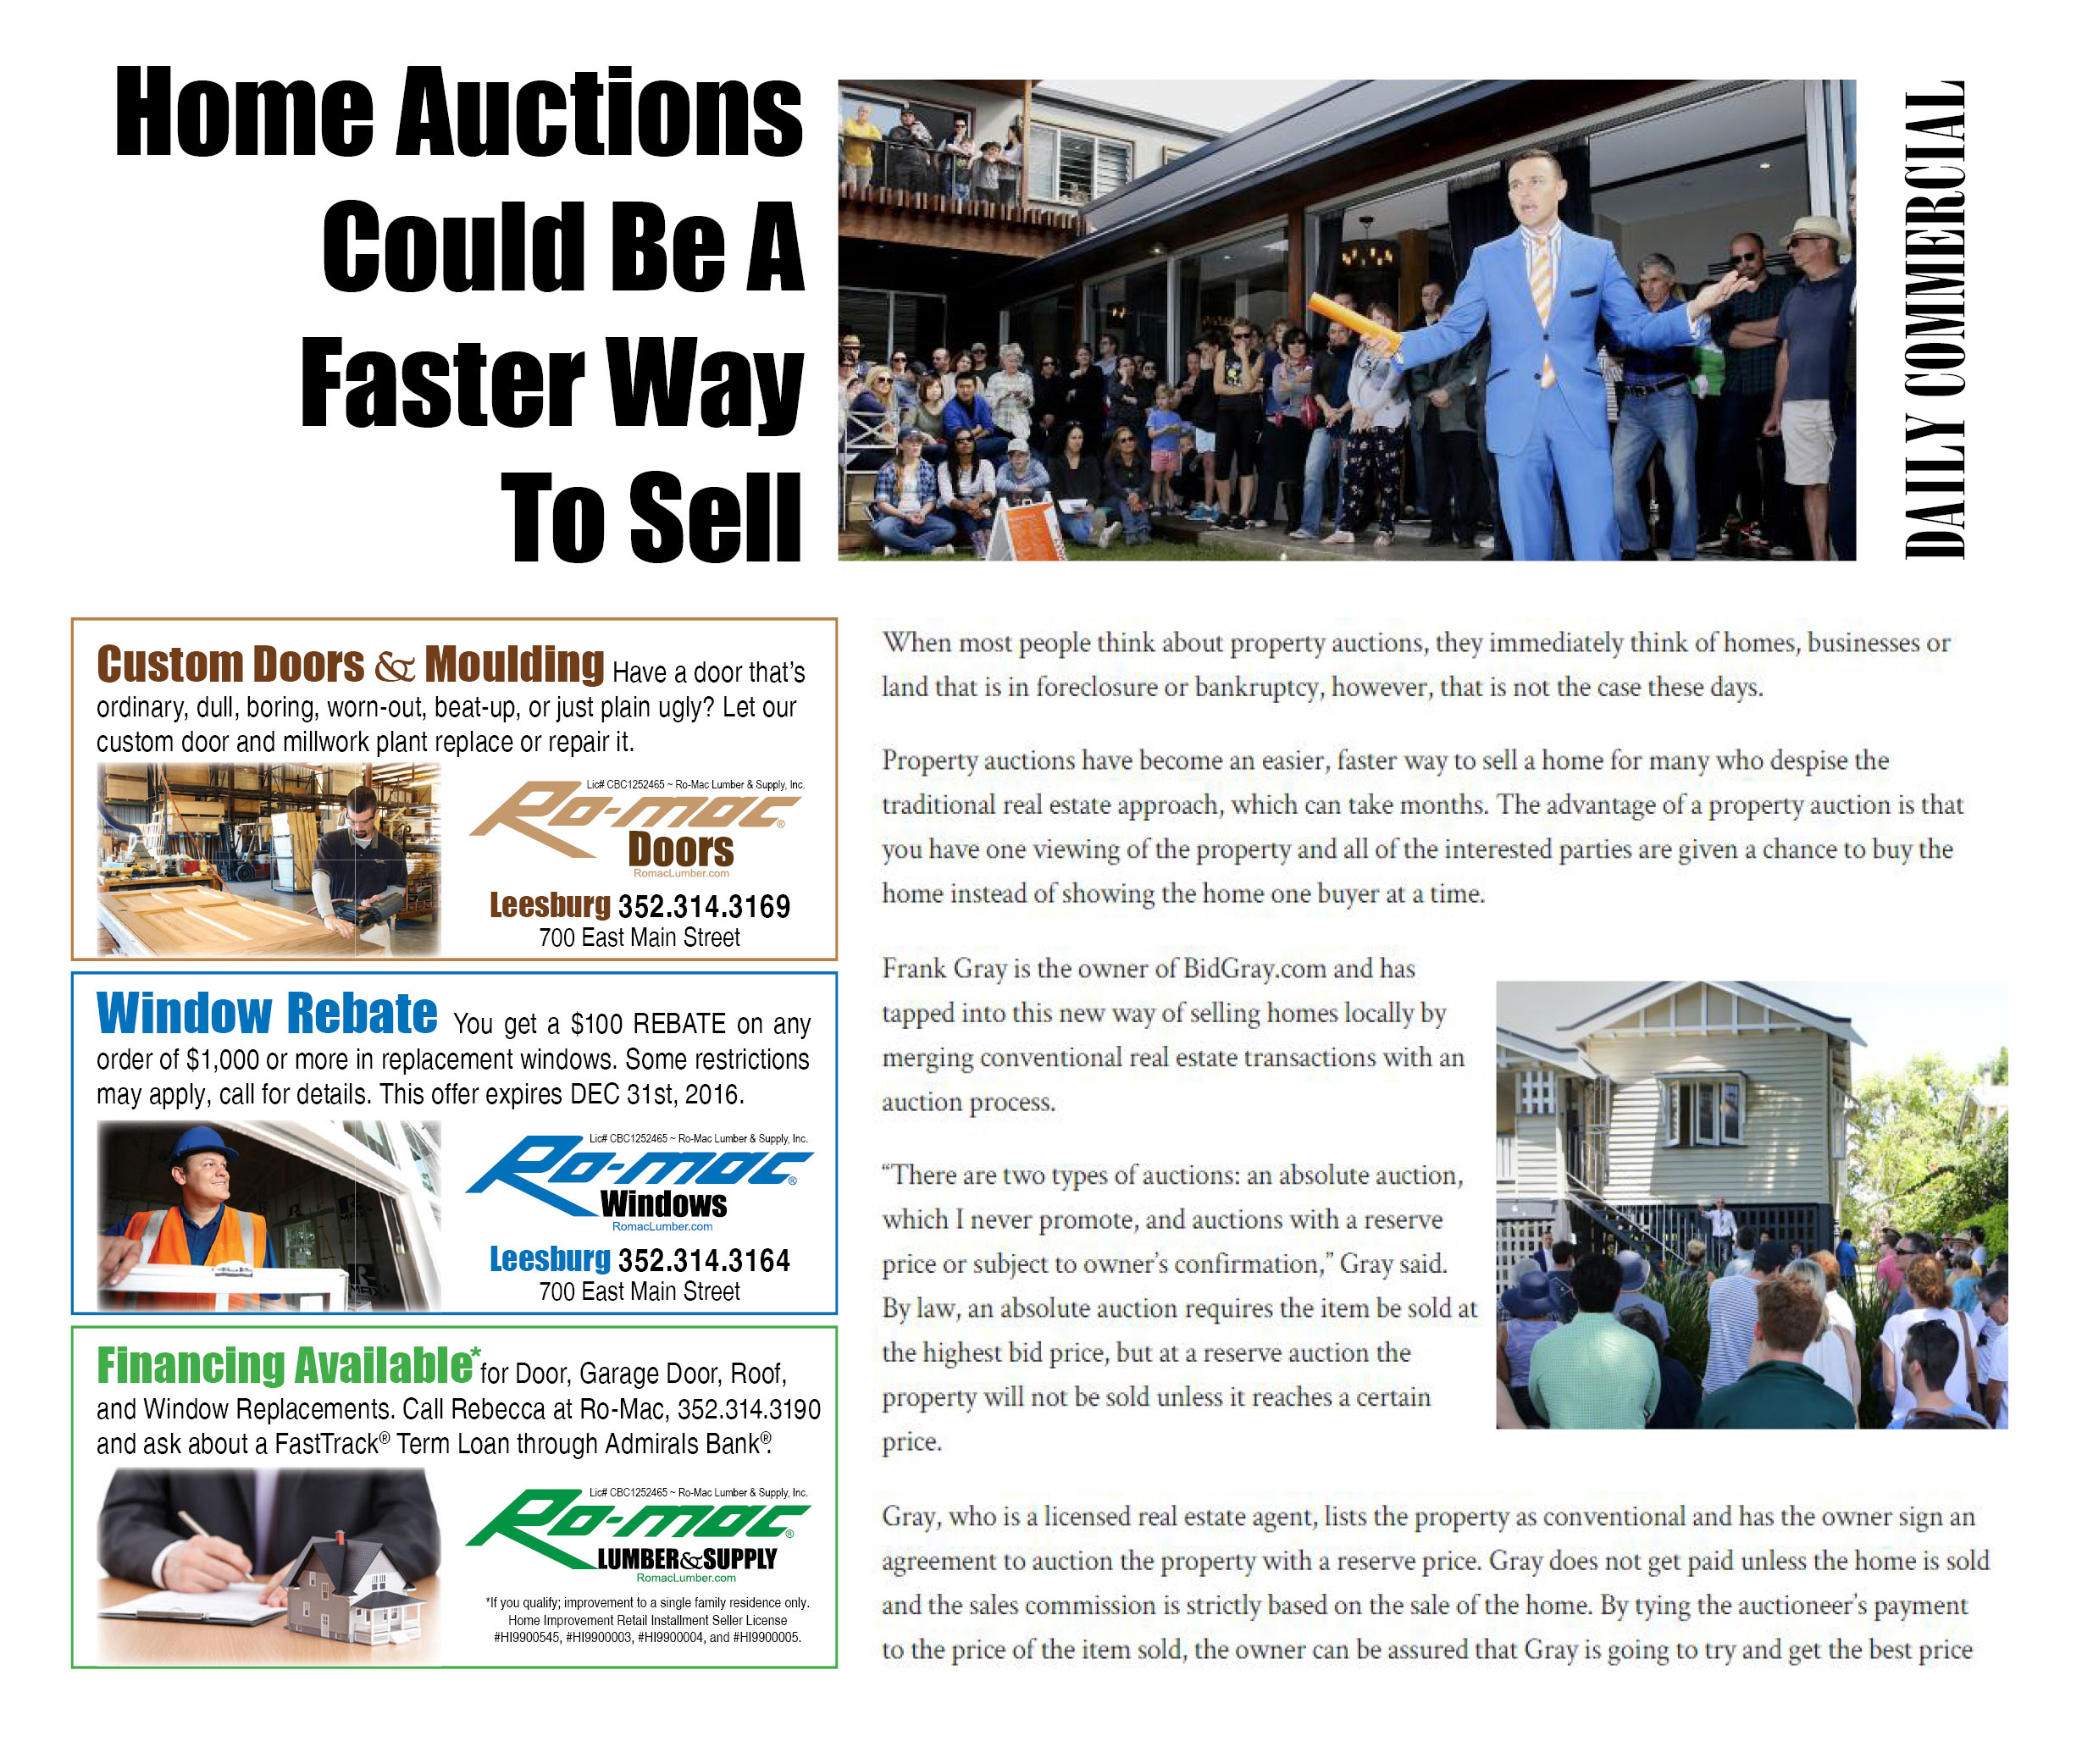 17-05-13 HomeAuctions